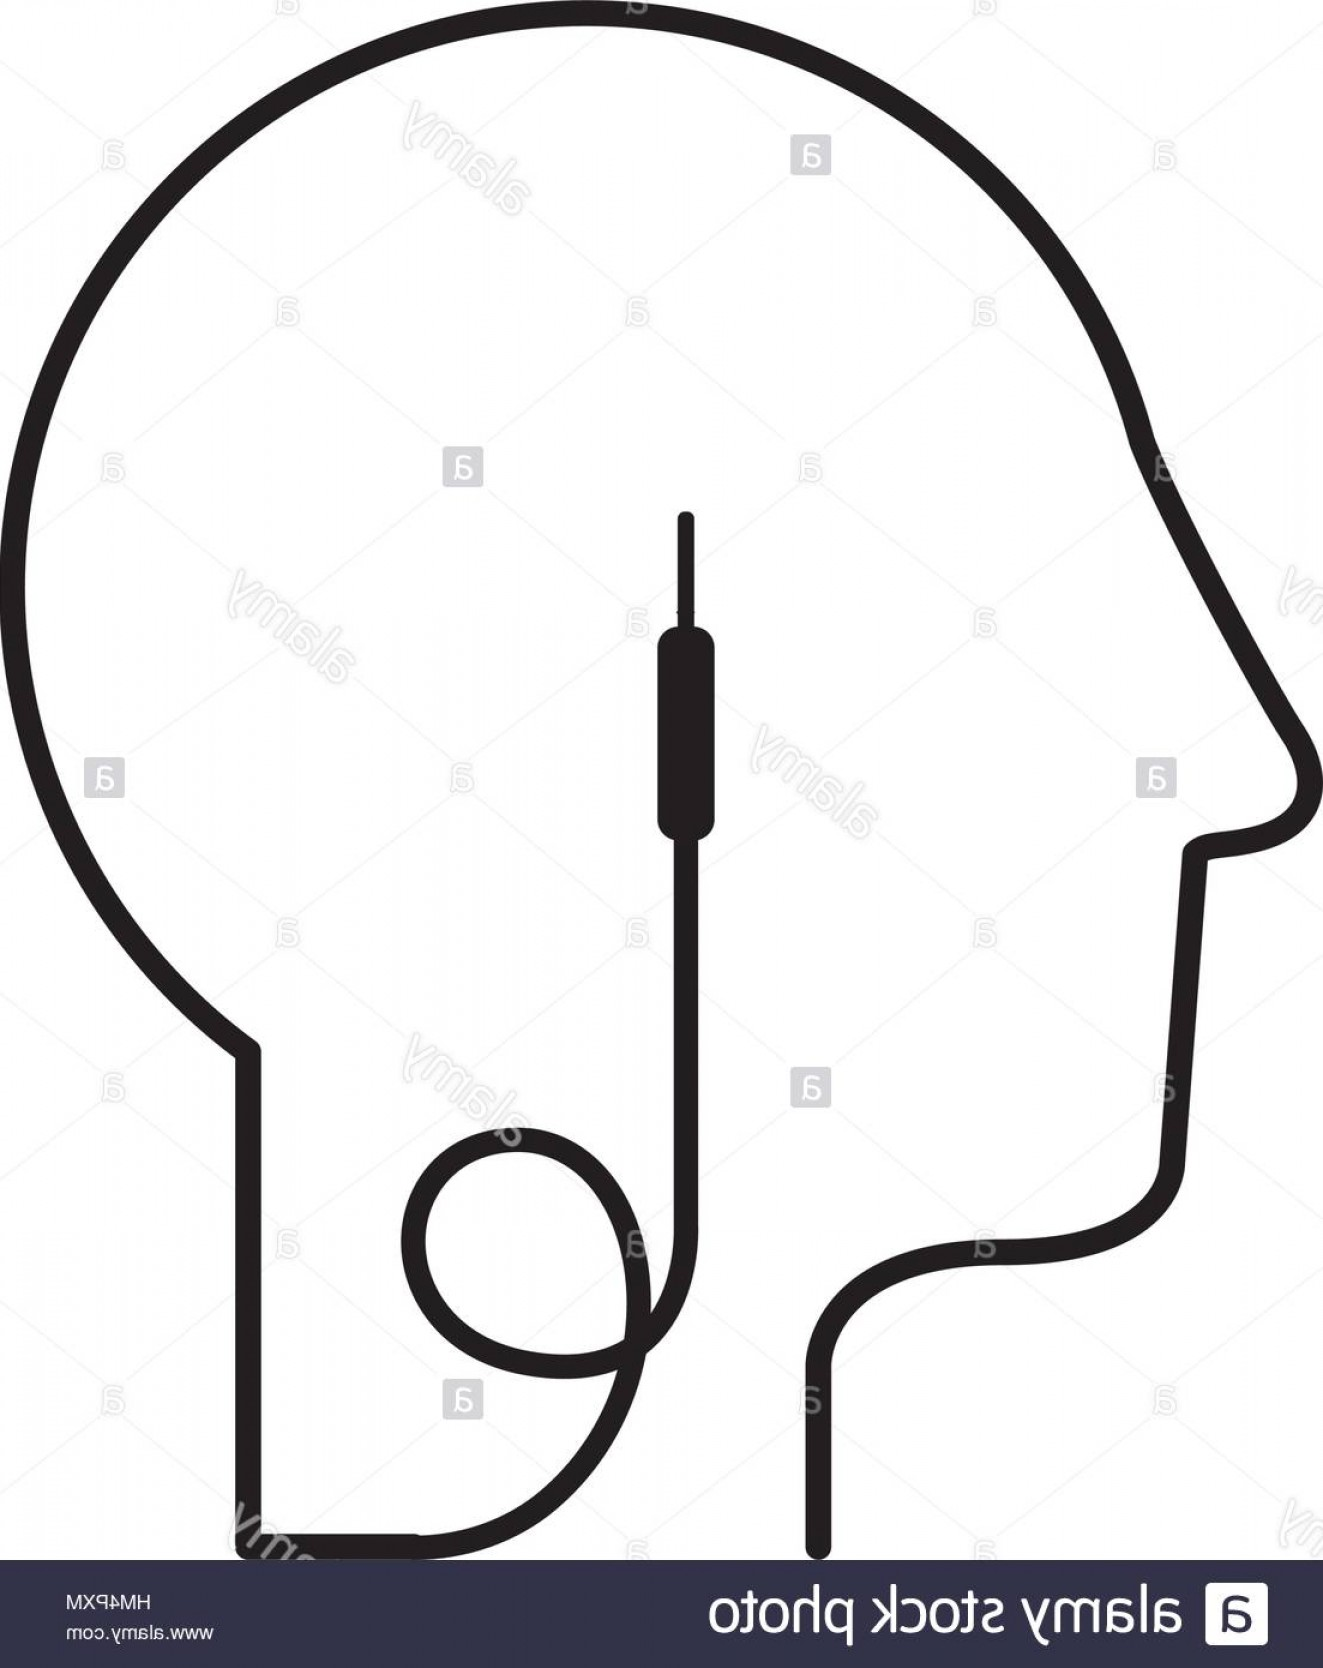 Vector Connector: Stock Photo Black Silhouette Head With Jack Connector Vector Illustration